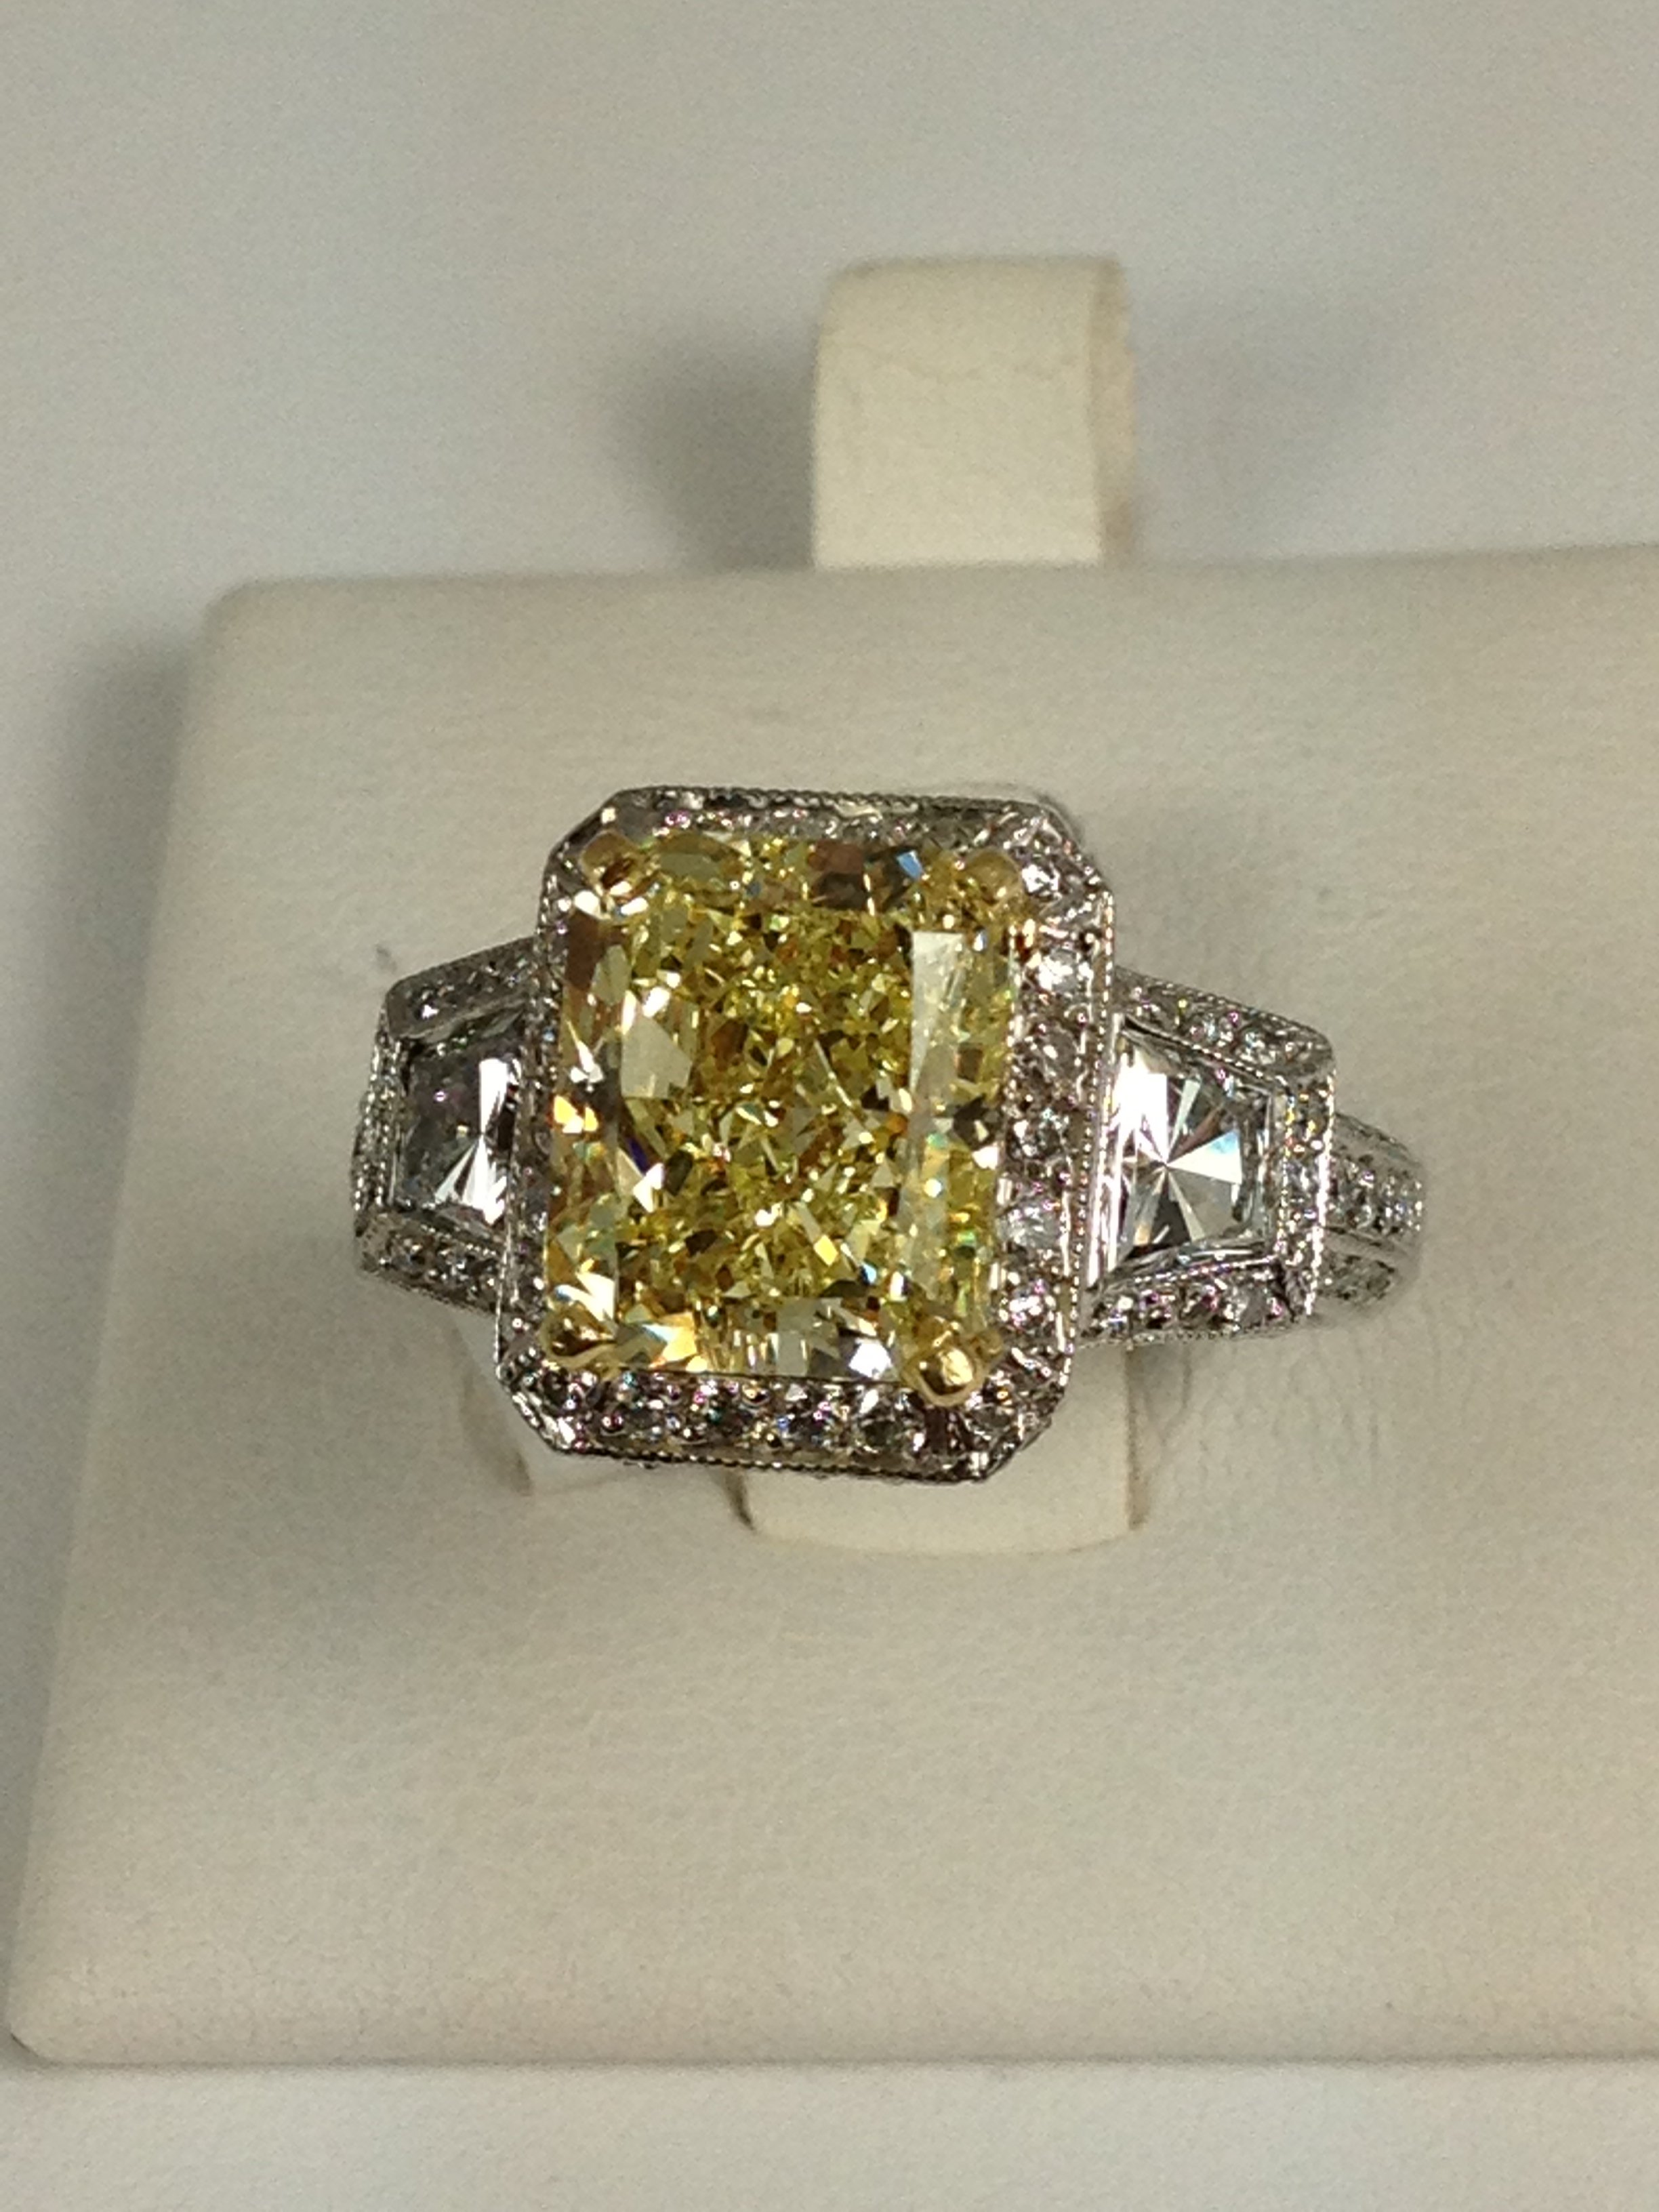 top picks for the holidays from alson jewelers yellow diamond wedding rings If you are thinking about proposing or if you are looking to upgrade your engagement ring this ring is spectacular This ring has a 4 42 carat Fancy Yellow